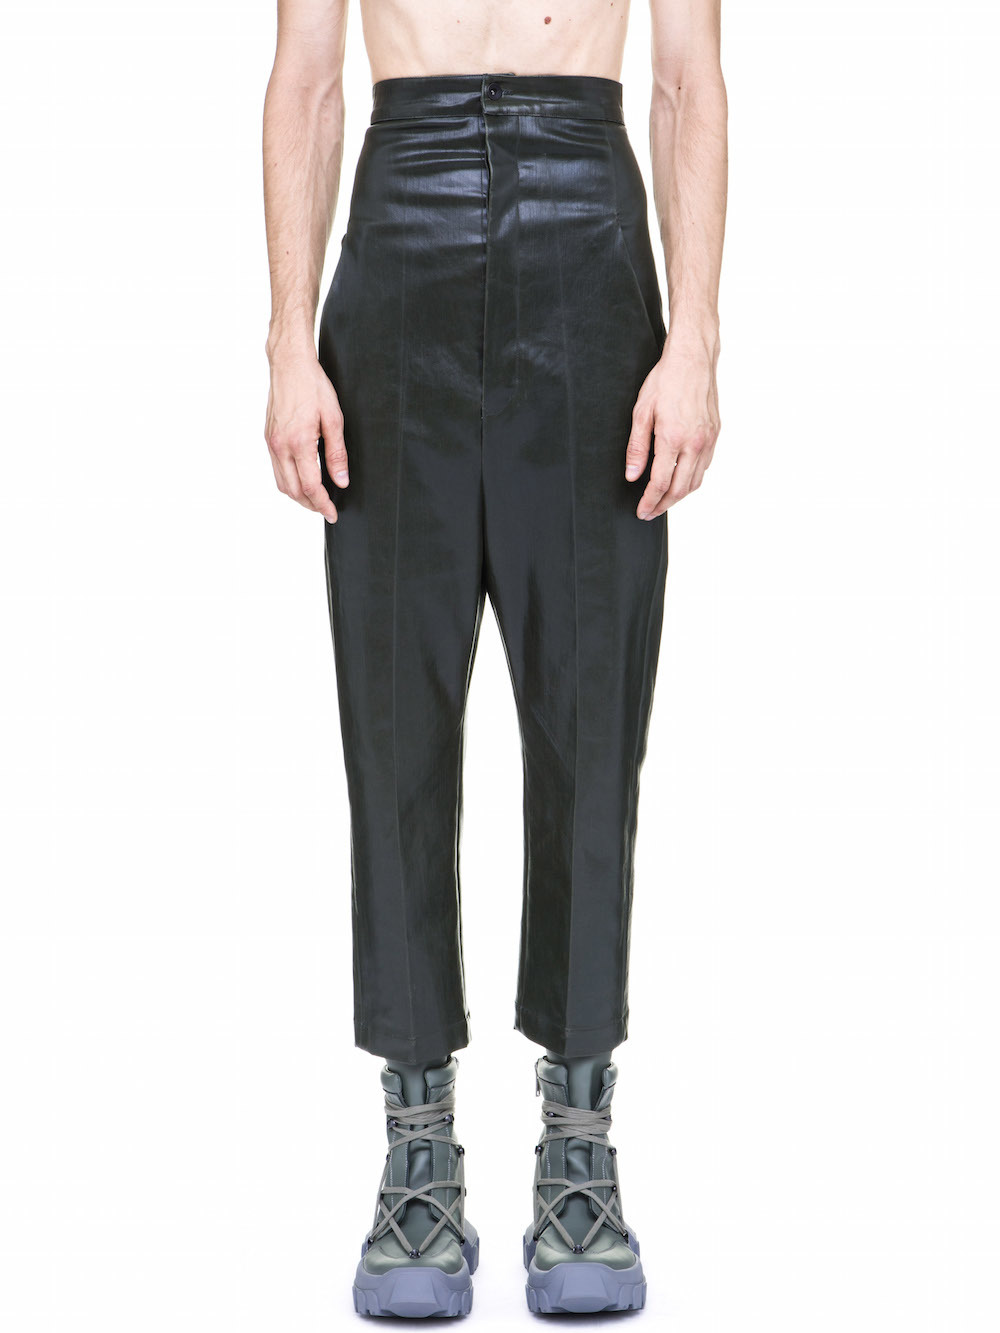 RICK OWENS OFF-THE-RUNWAY DIRT JEAN IN FOREST GREEN